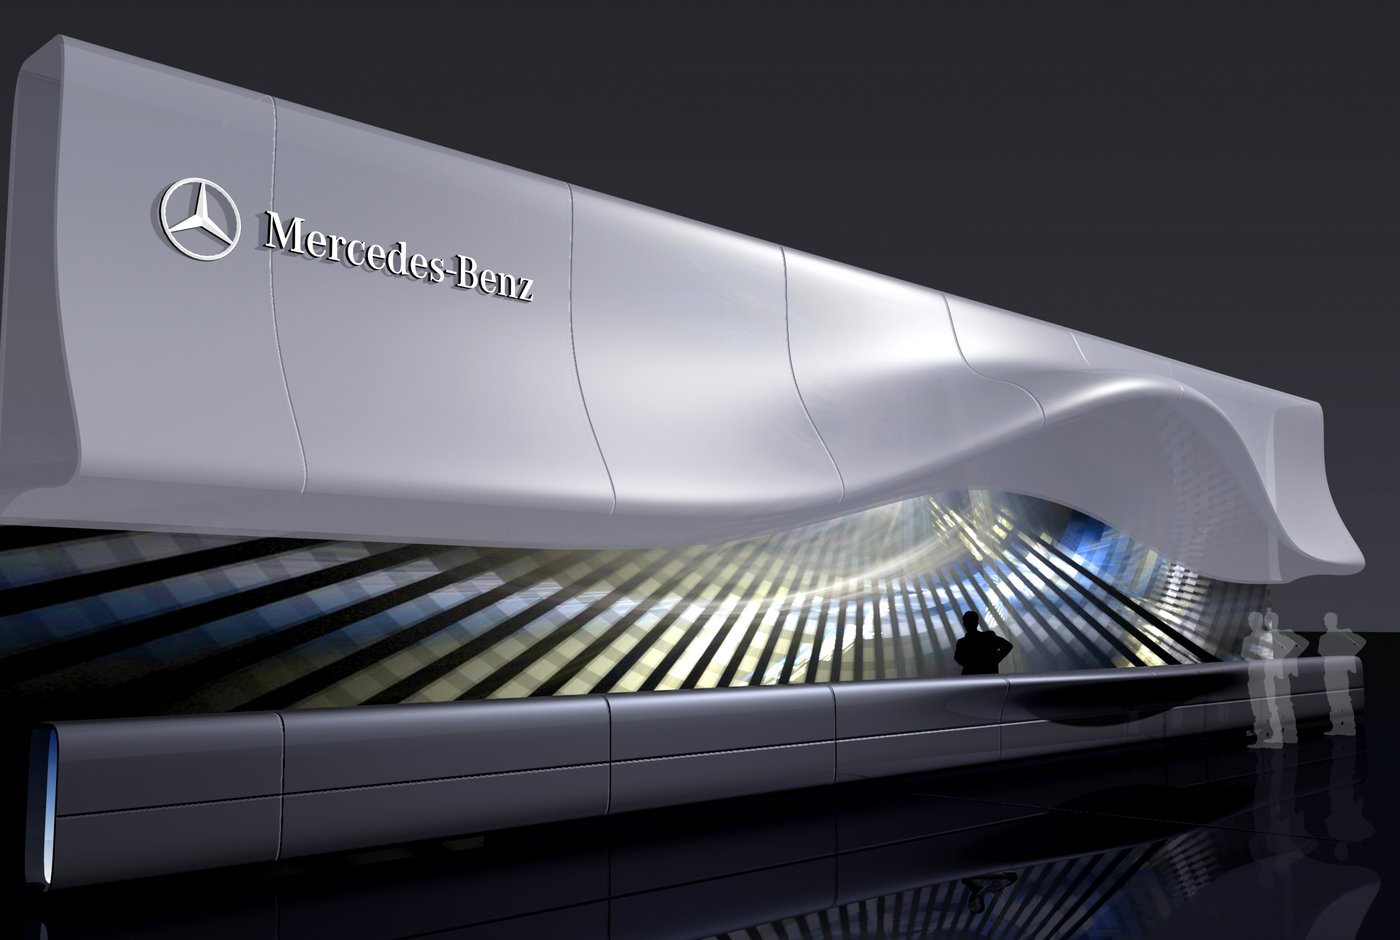 Exhibition Stand Design Proposal : Mercedes benz proposal by dmitry azrikan phd at coroflot